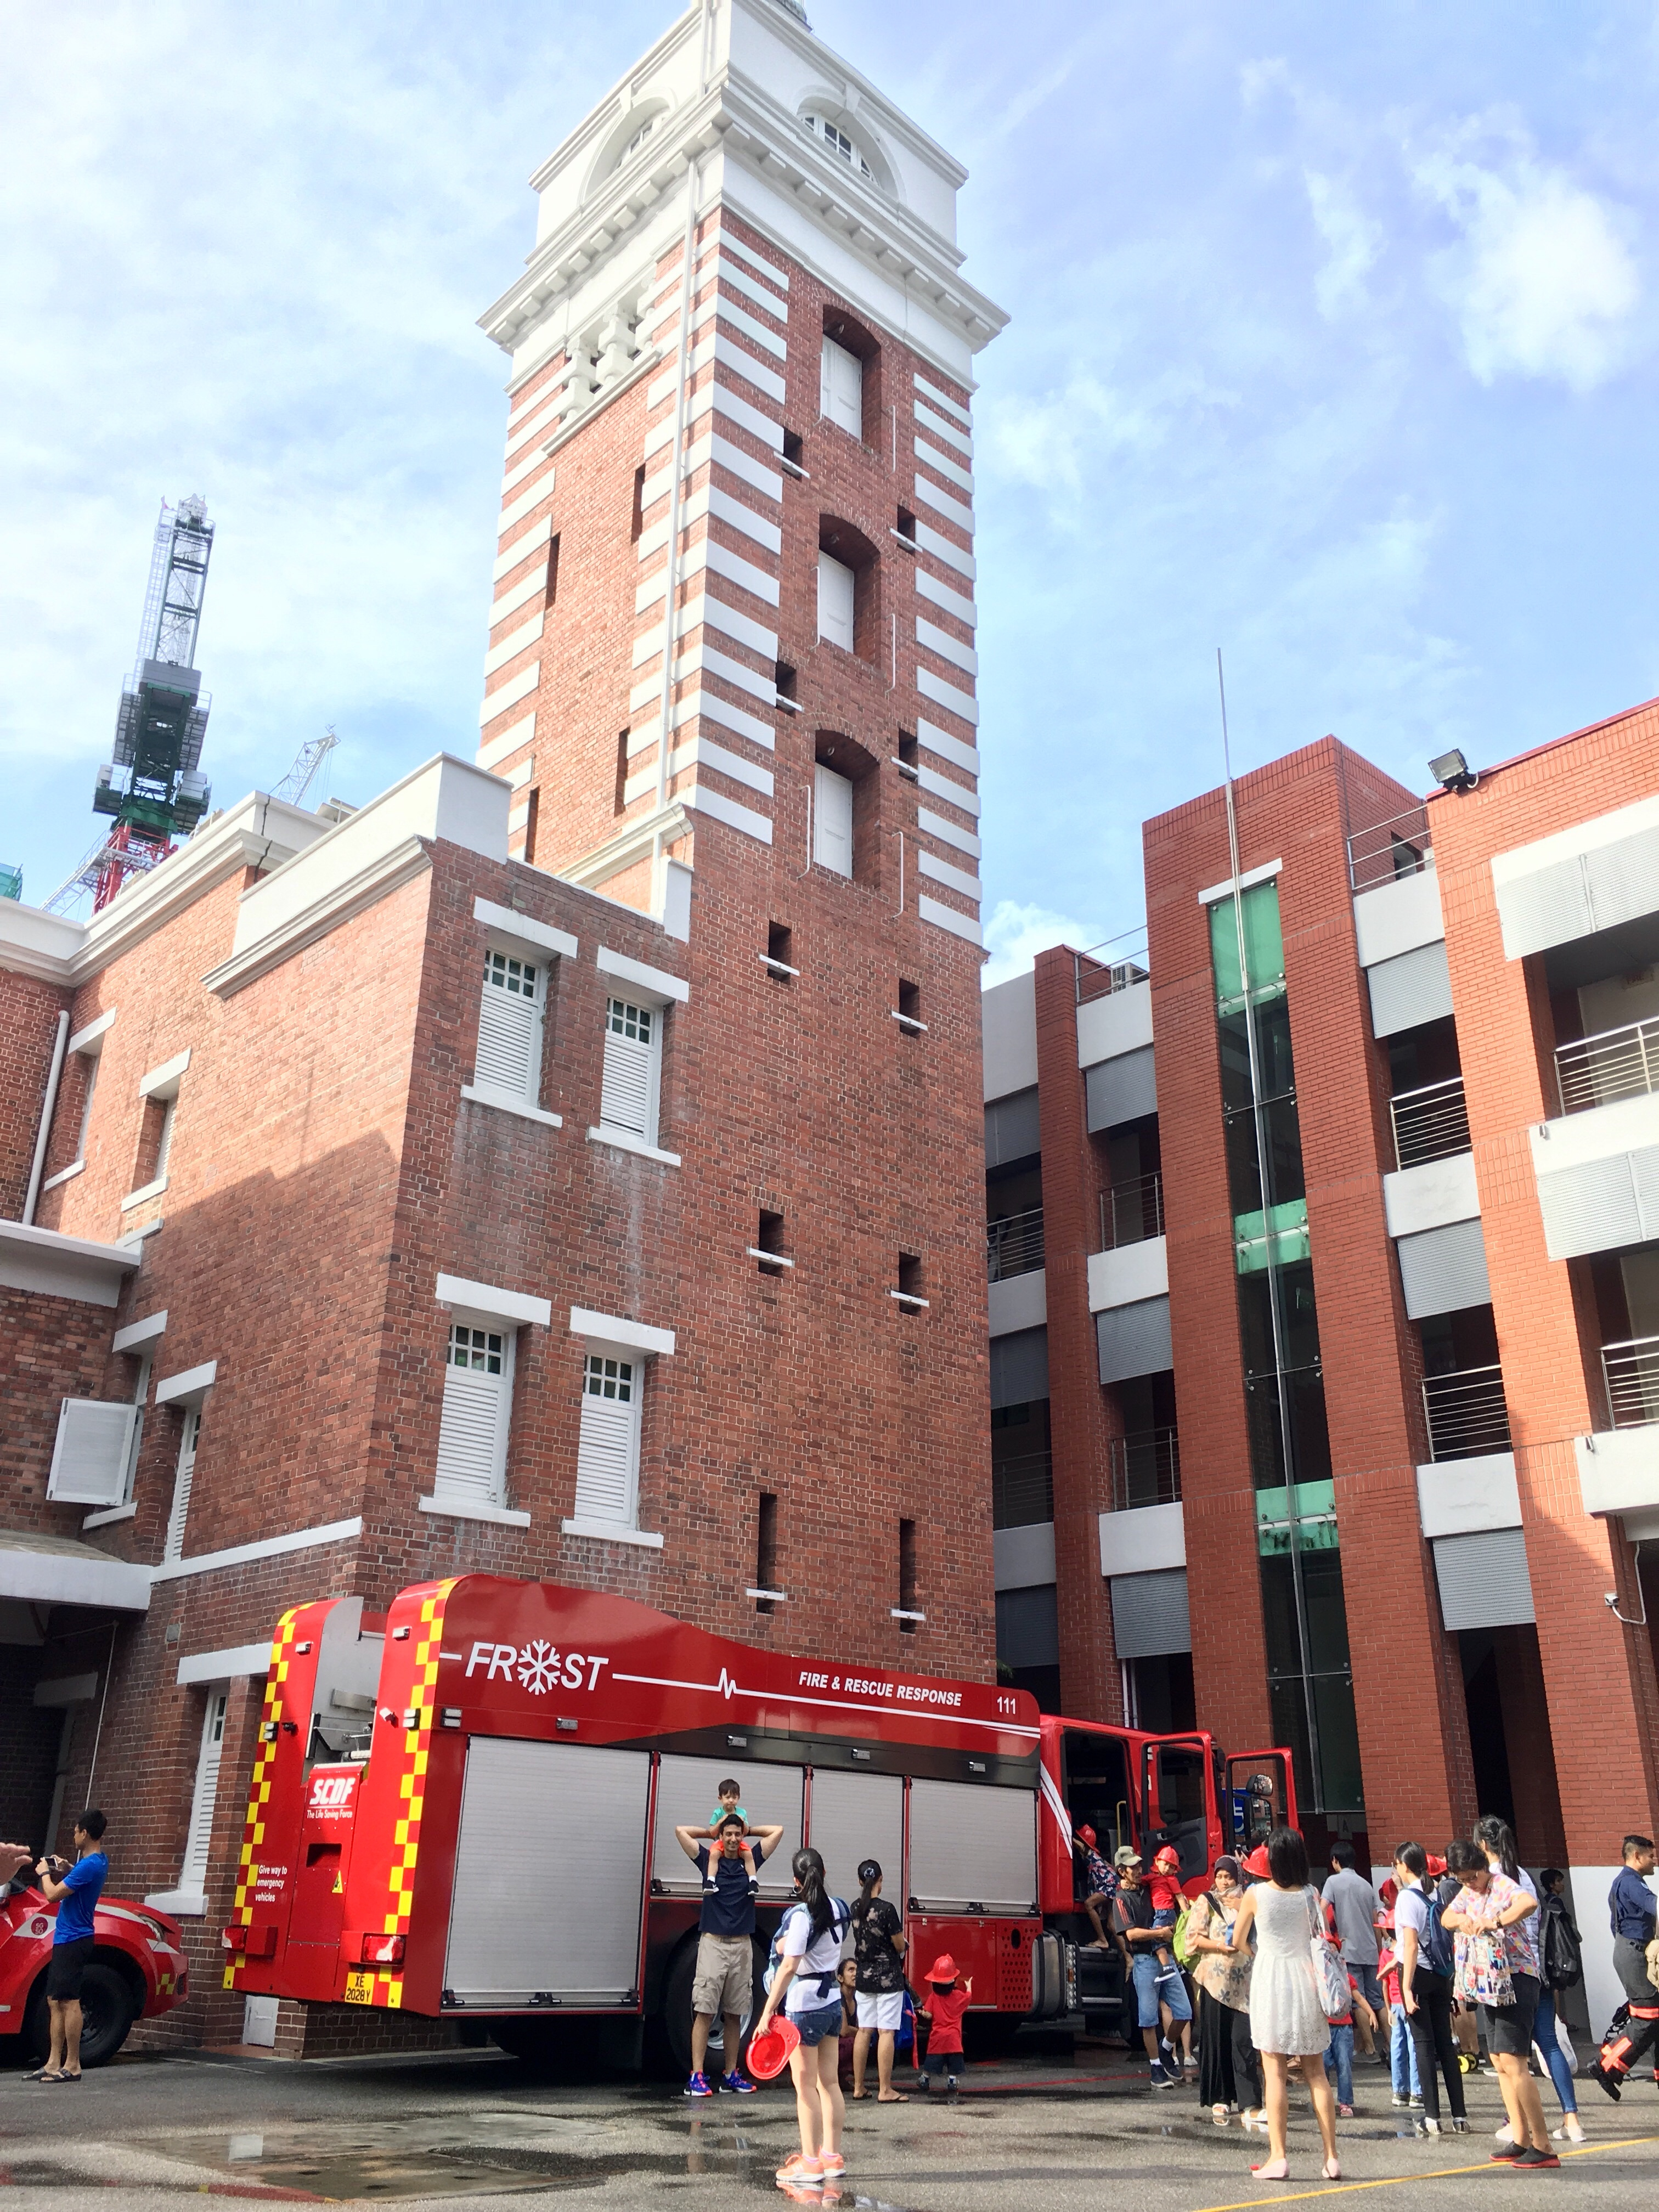 Central Fire Station, Singapore